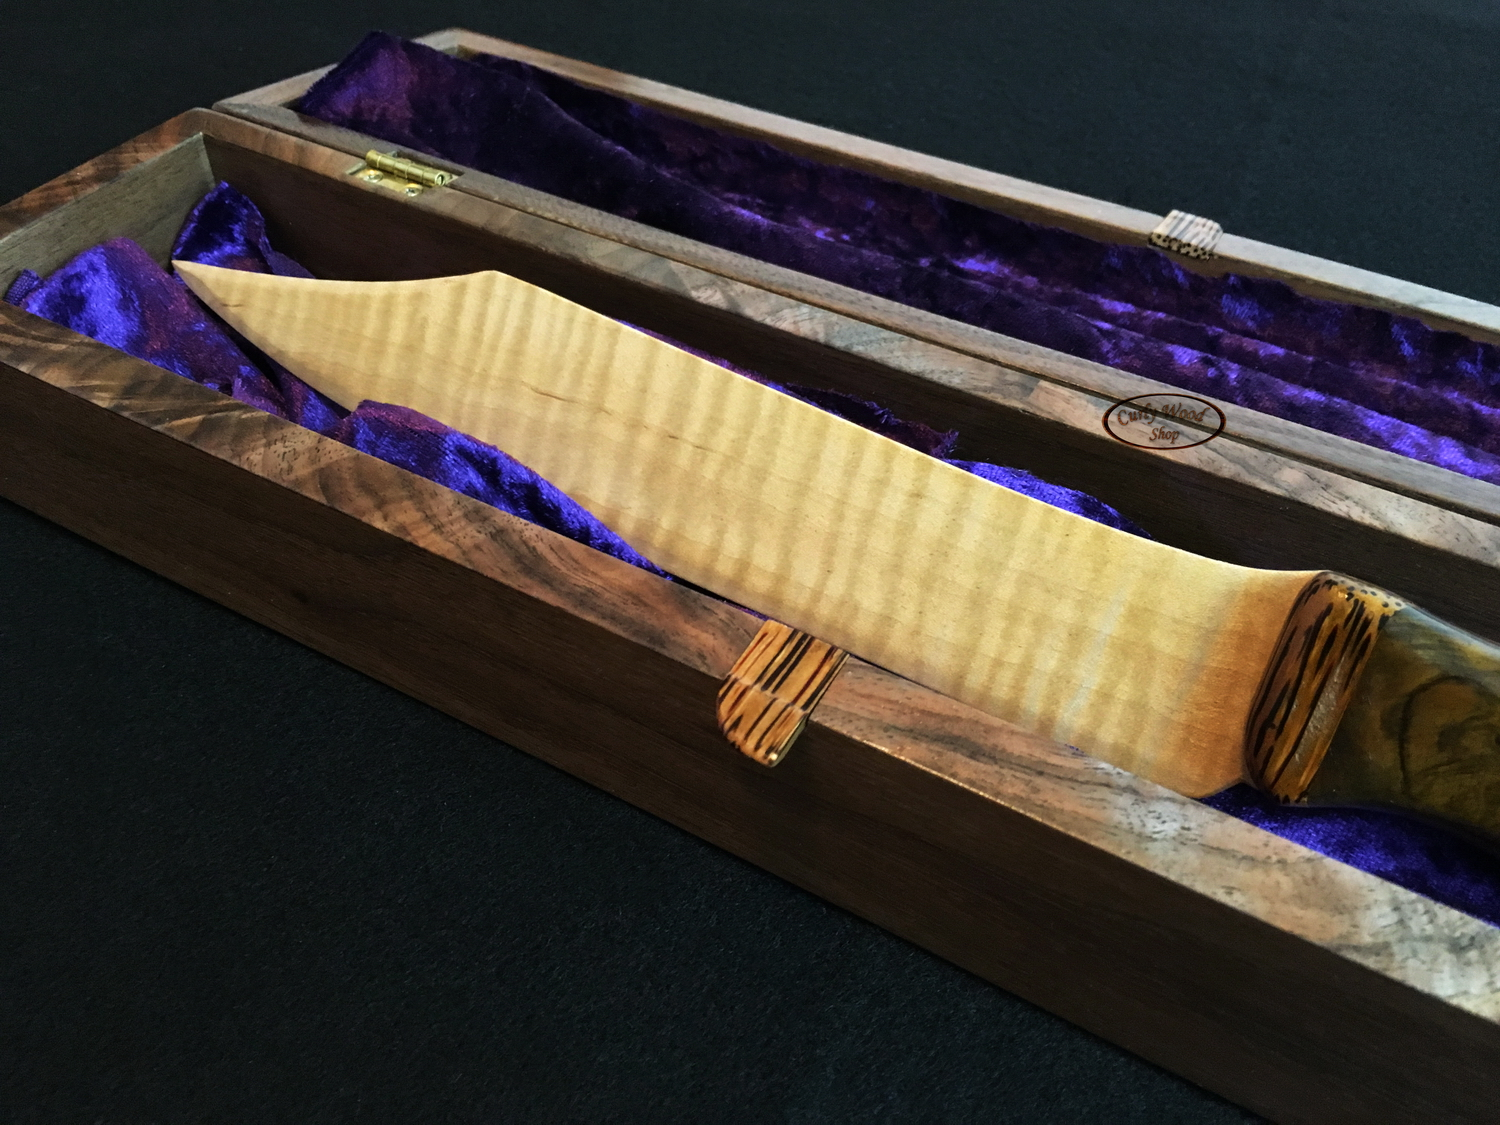 Knife presentation box-009-walnut-red-palm-curly-maple-figured-walnut-knife-box.jpg